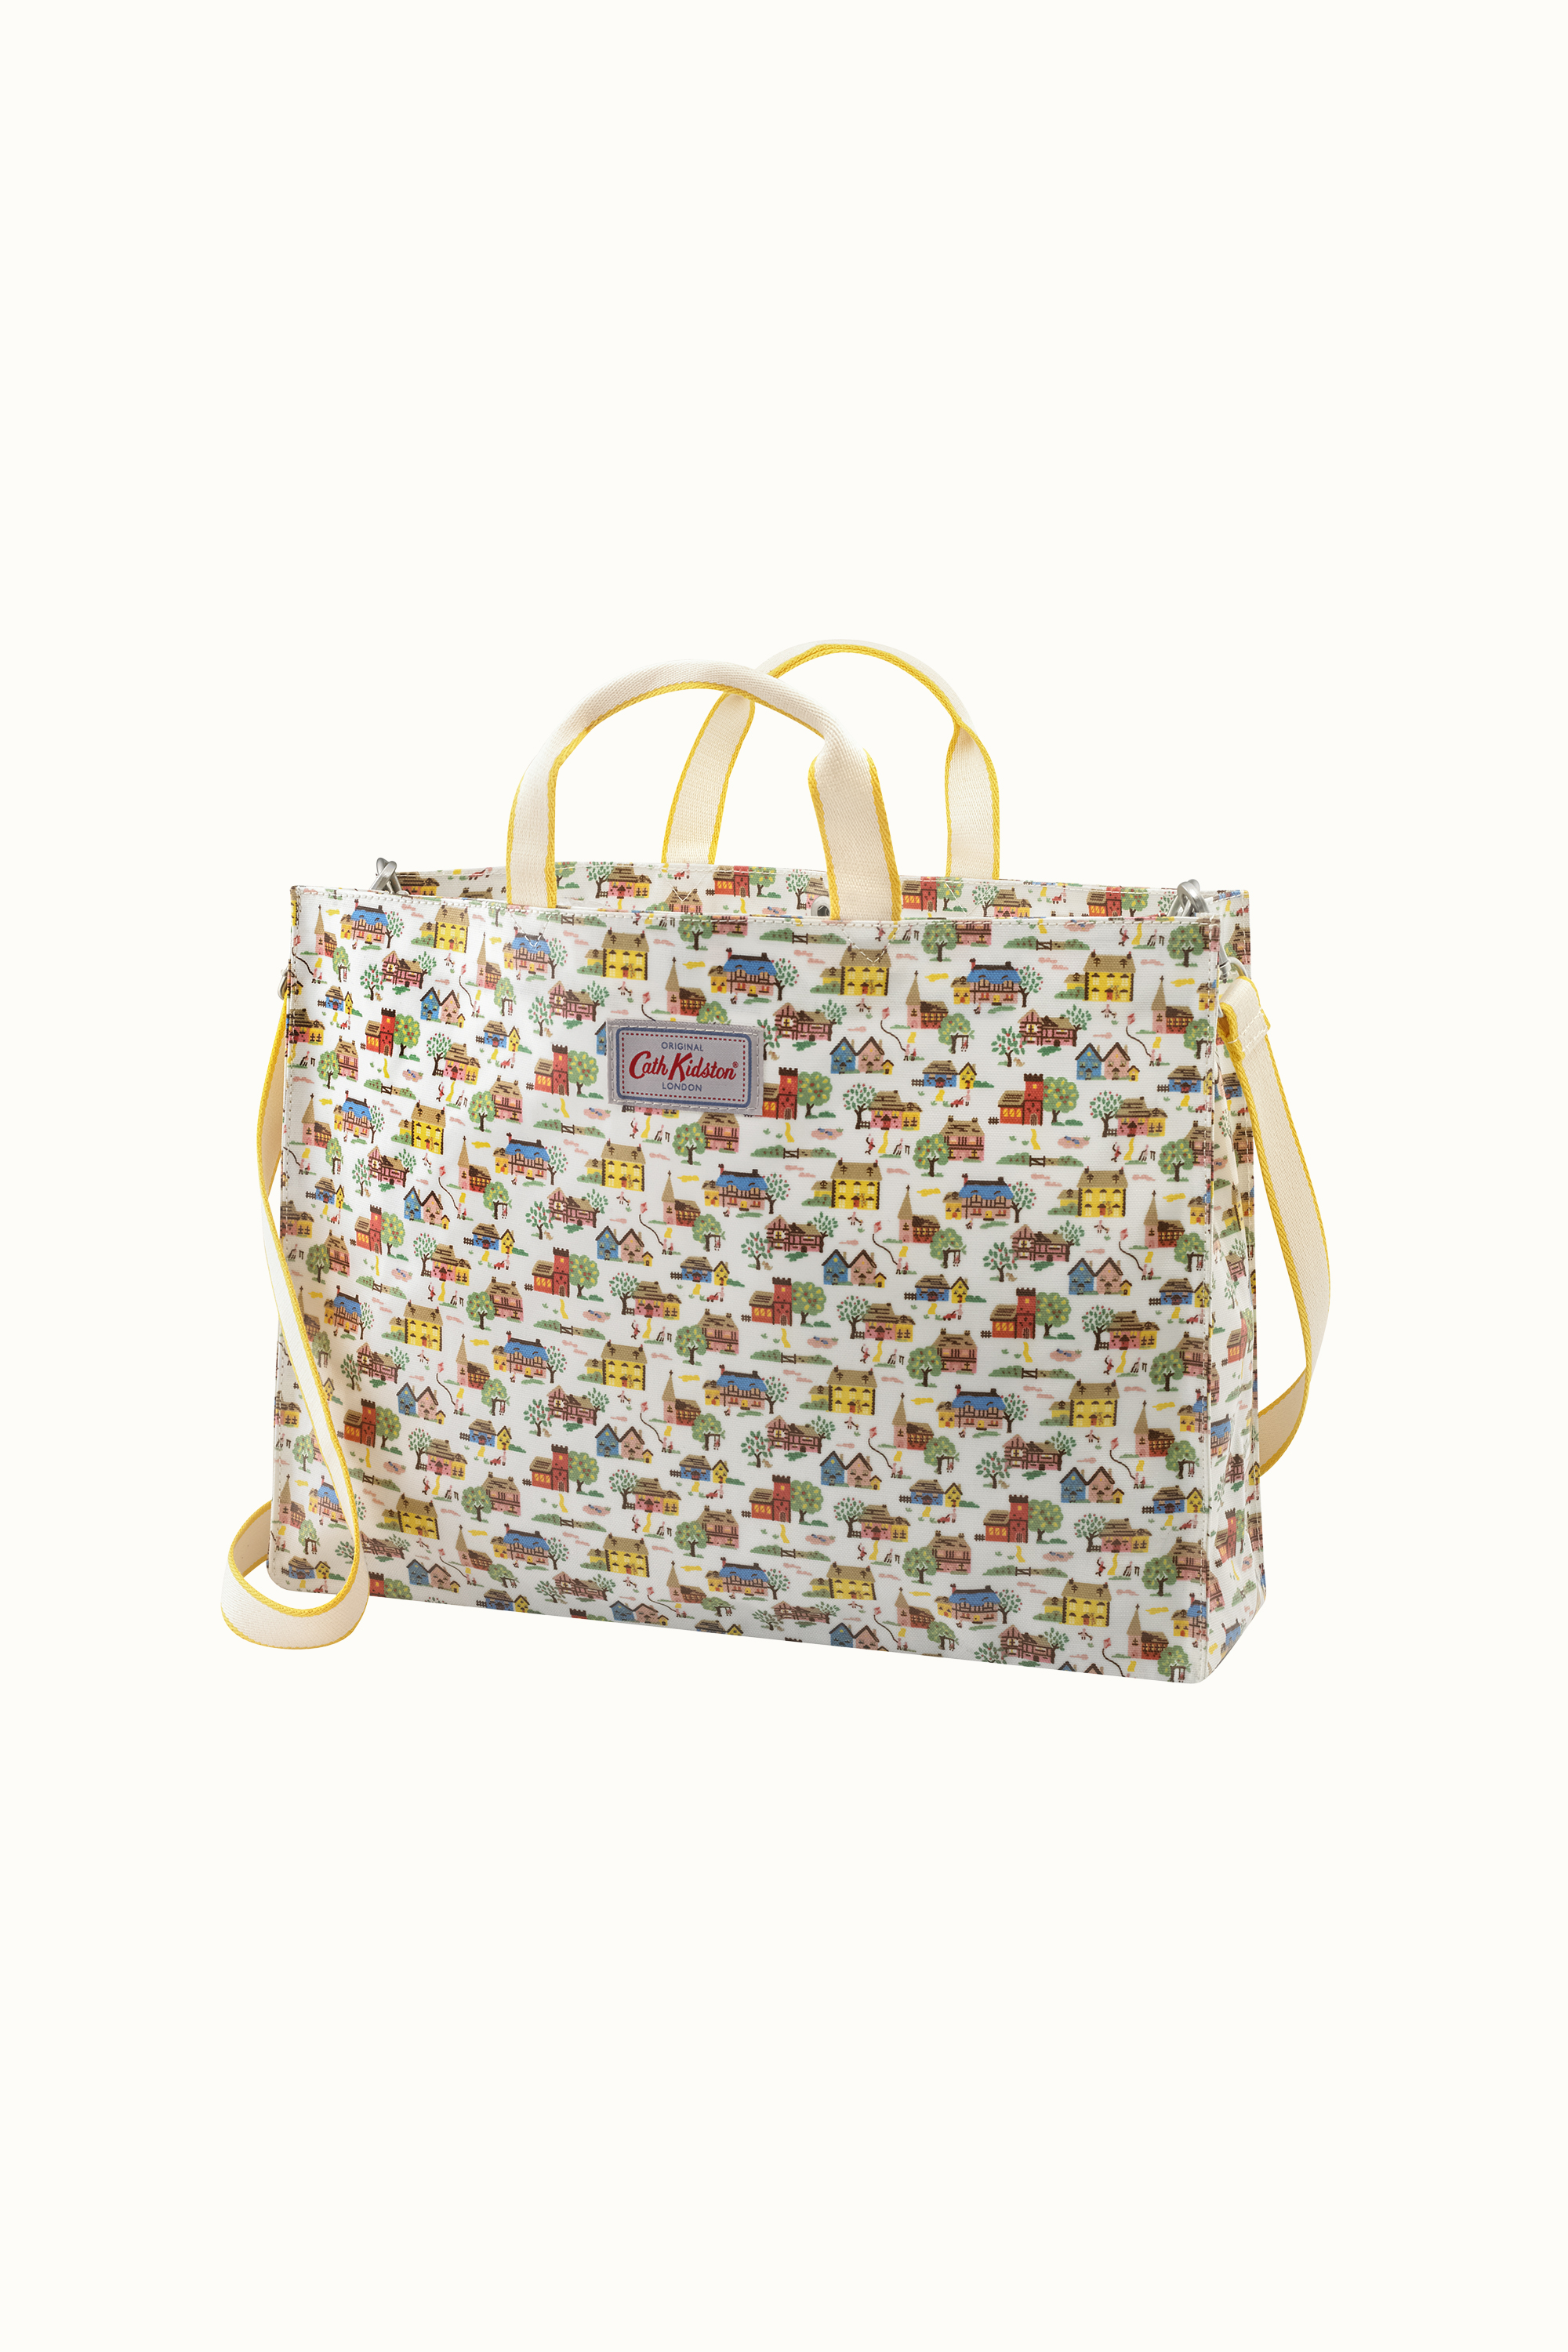 Cath Kidston Home Sweet Home Strappy Carryall Bag in Cream